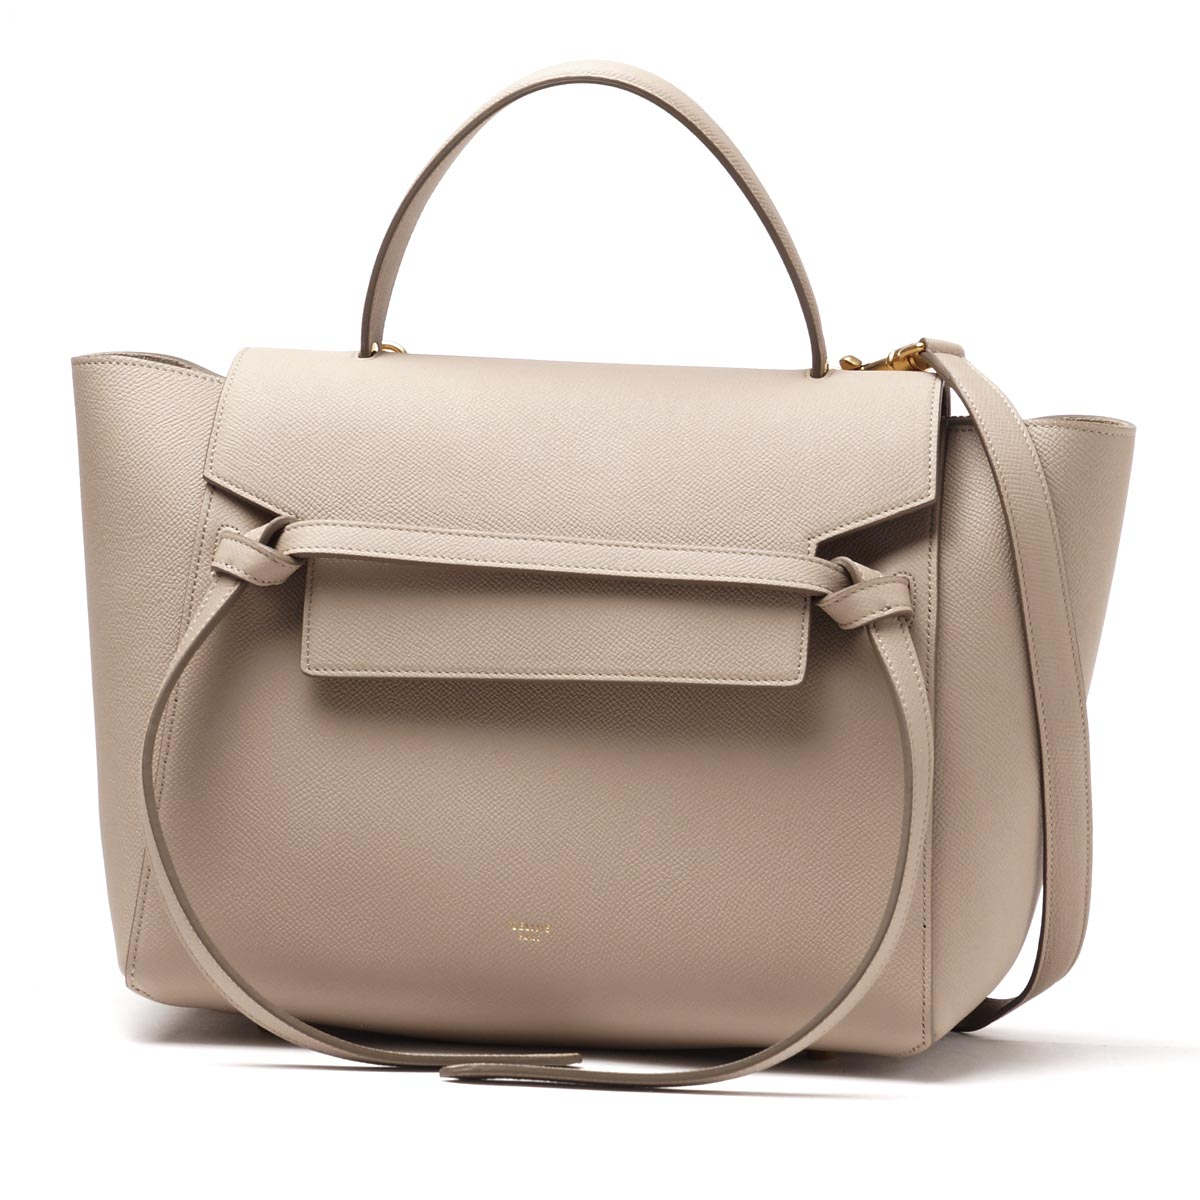 "The Celine Belt Bag (Taupe) i.e. ""The Miracle Bag"" – Ssa sPage 3f3012d552c45"